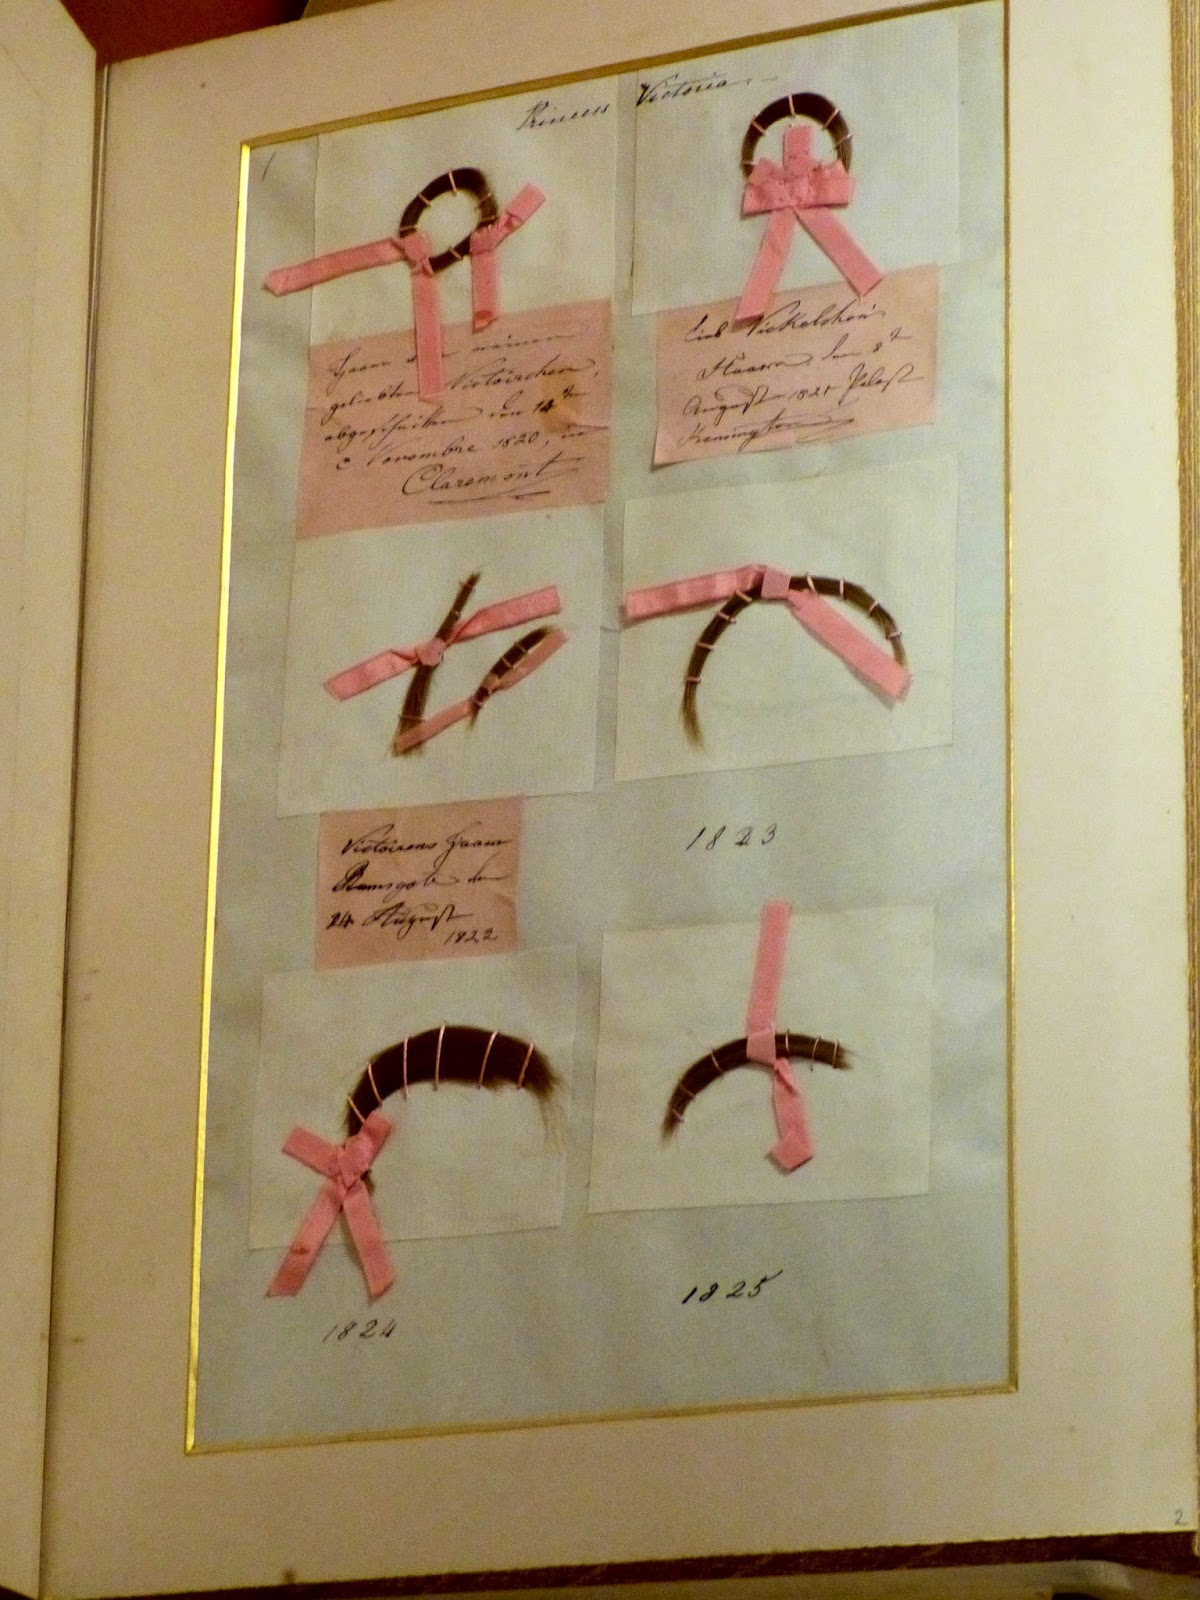 Locks of Queen Victoria's hair (1820-5)